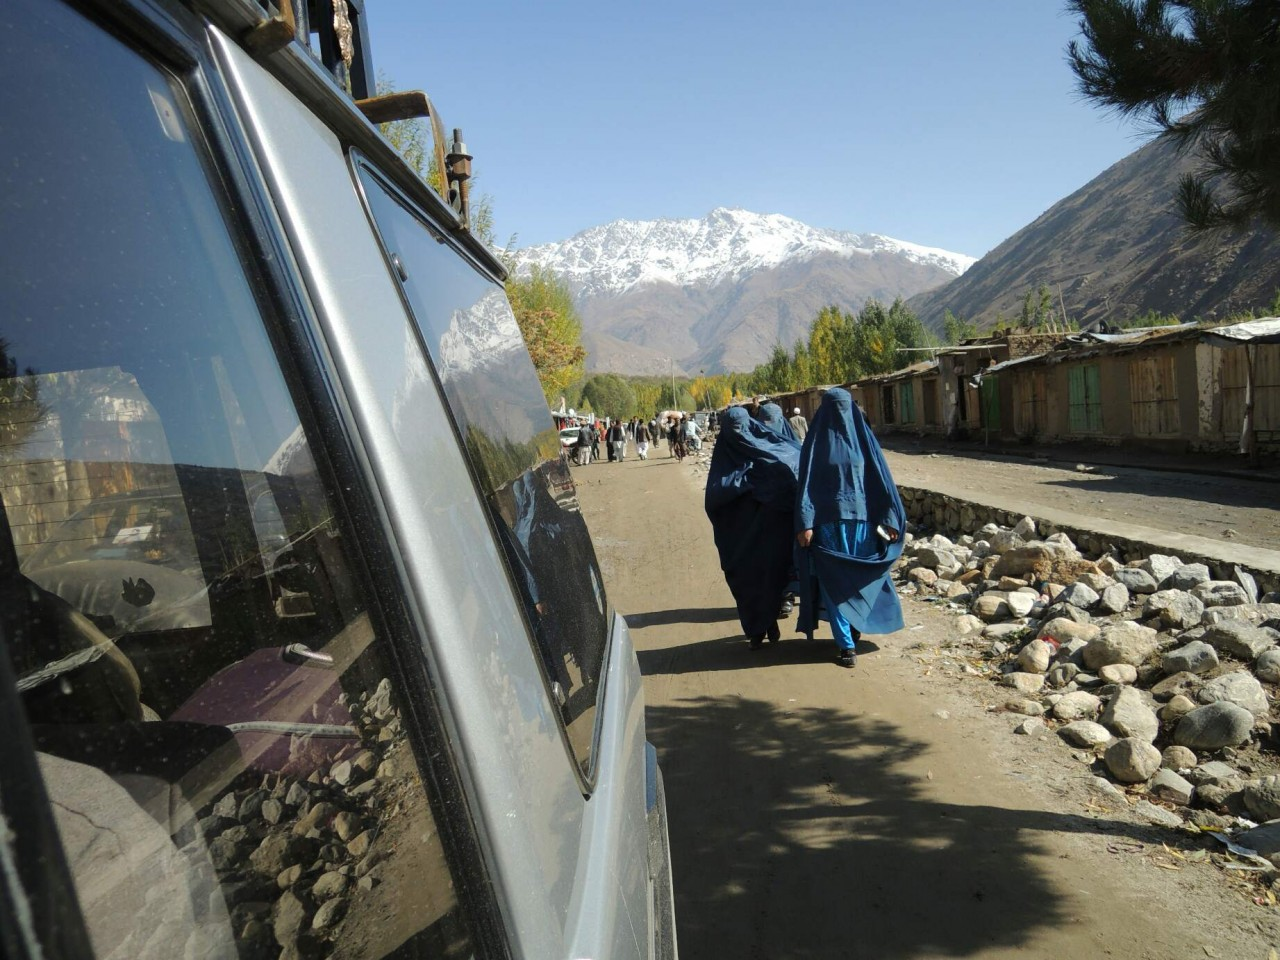 Covered women in Afghanistan